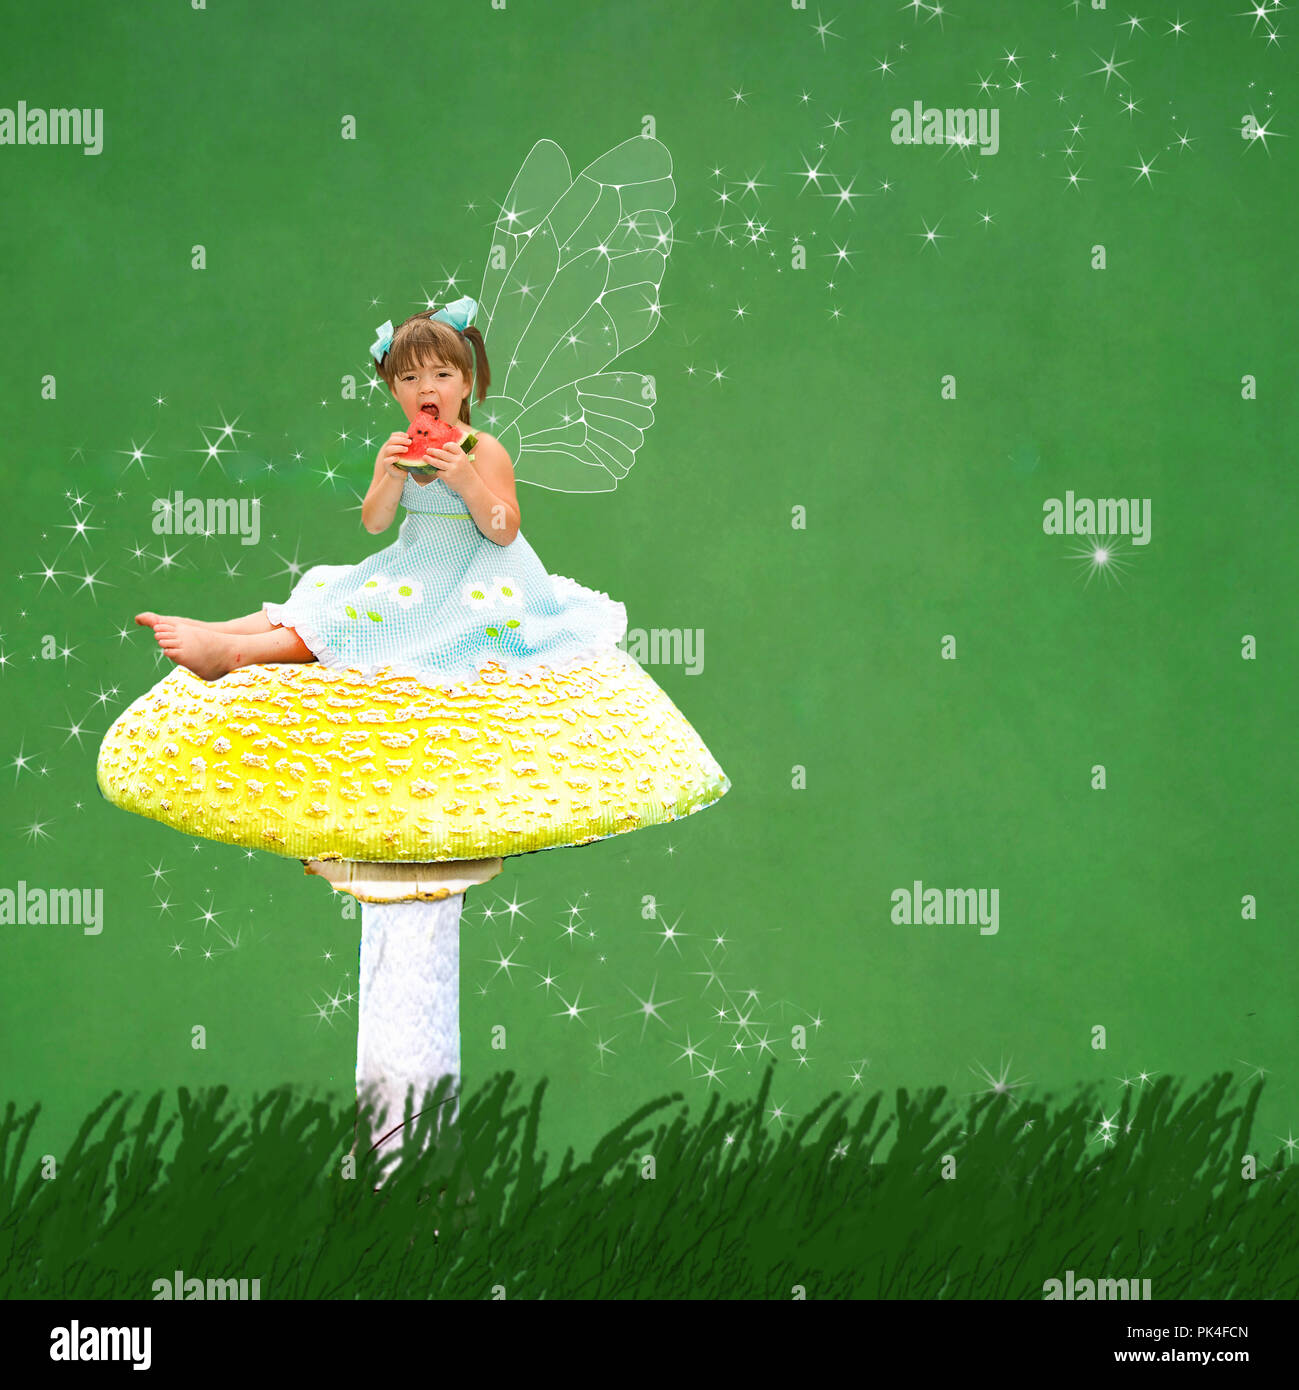 Magical and mystical image of a small girl sitting on top of a large yellow mushroom eating a slice of watermellon.  Star Gaze surrounds her.  Concept. - Stock Image